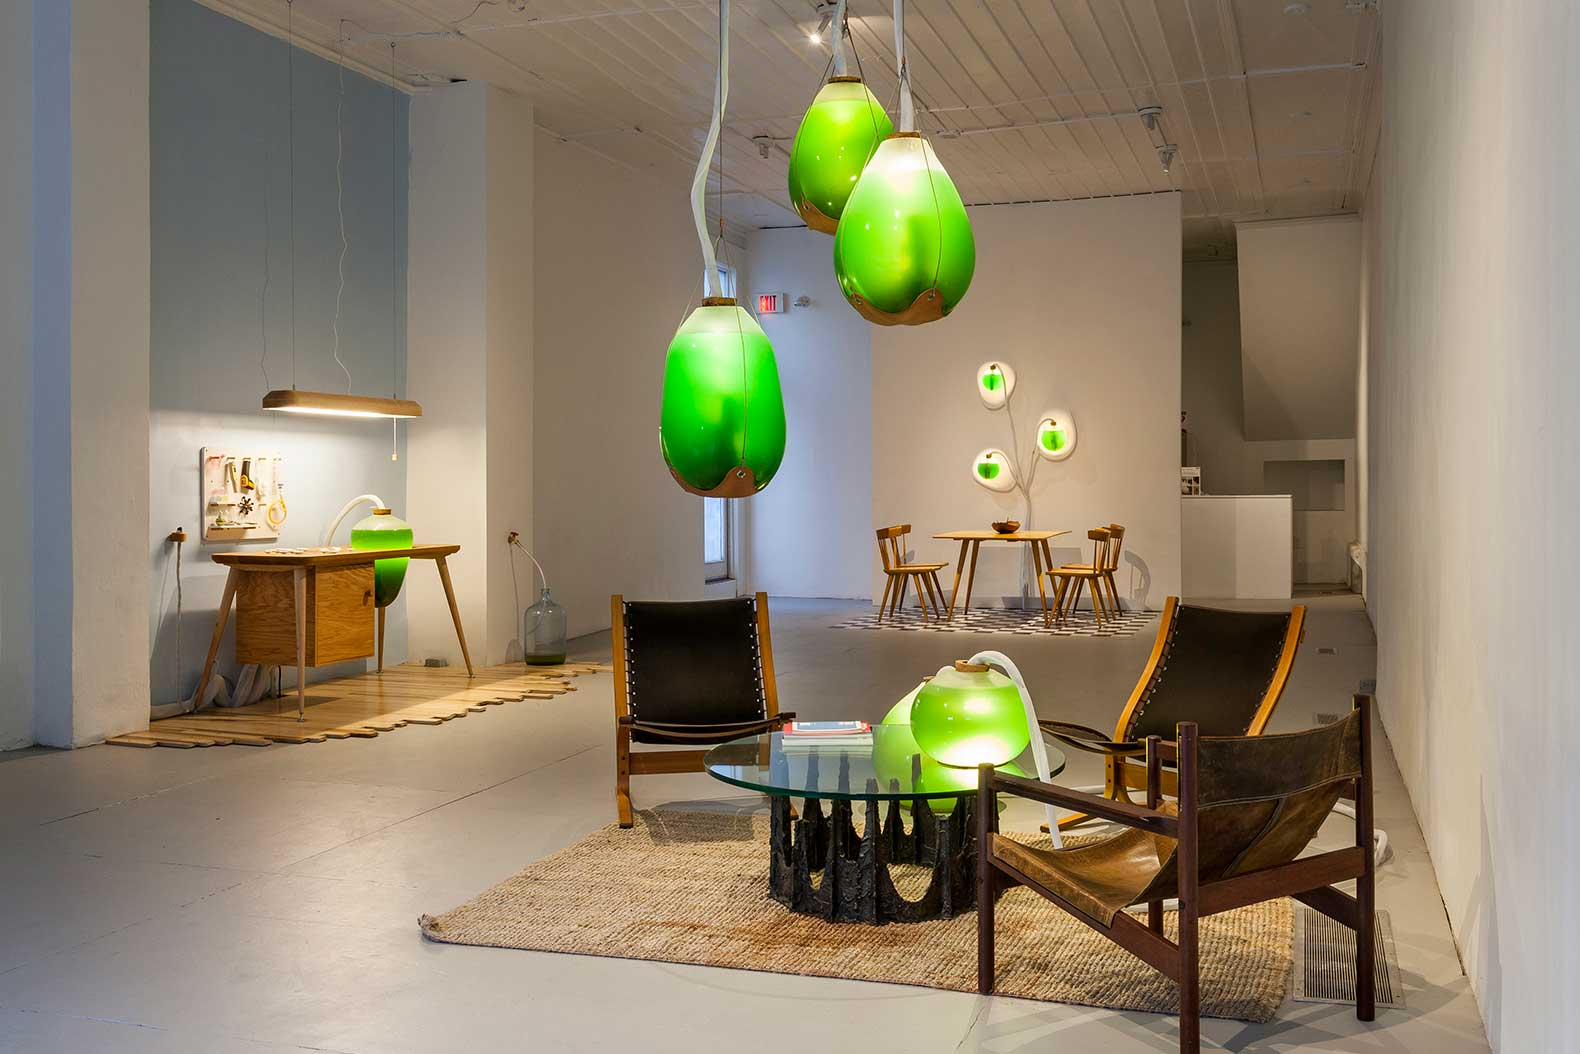 Transfixing Spirulina Furniture Produces Free Heat Light and Food